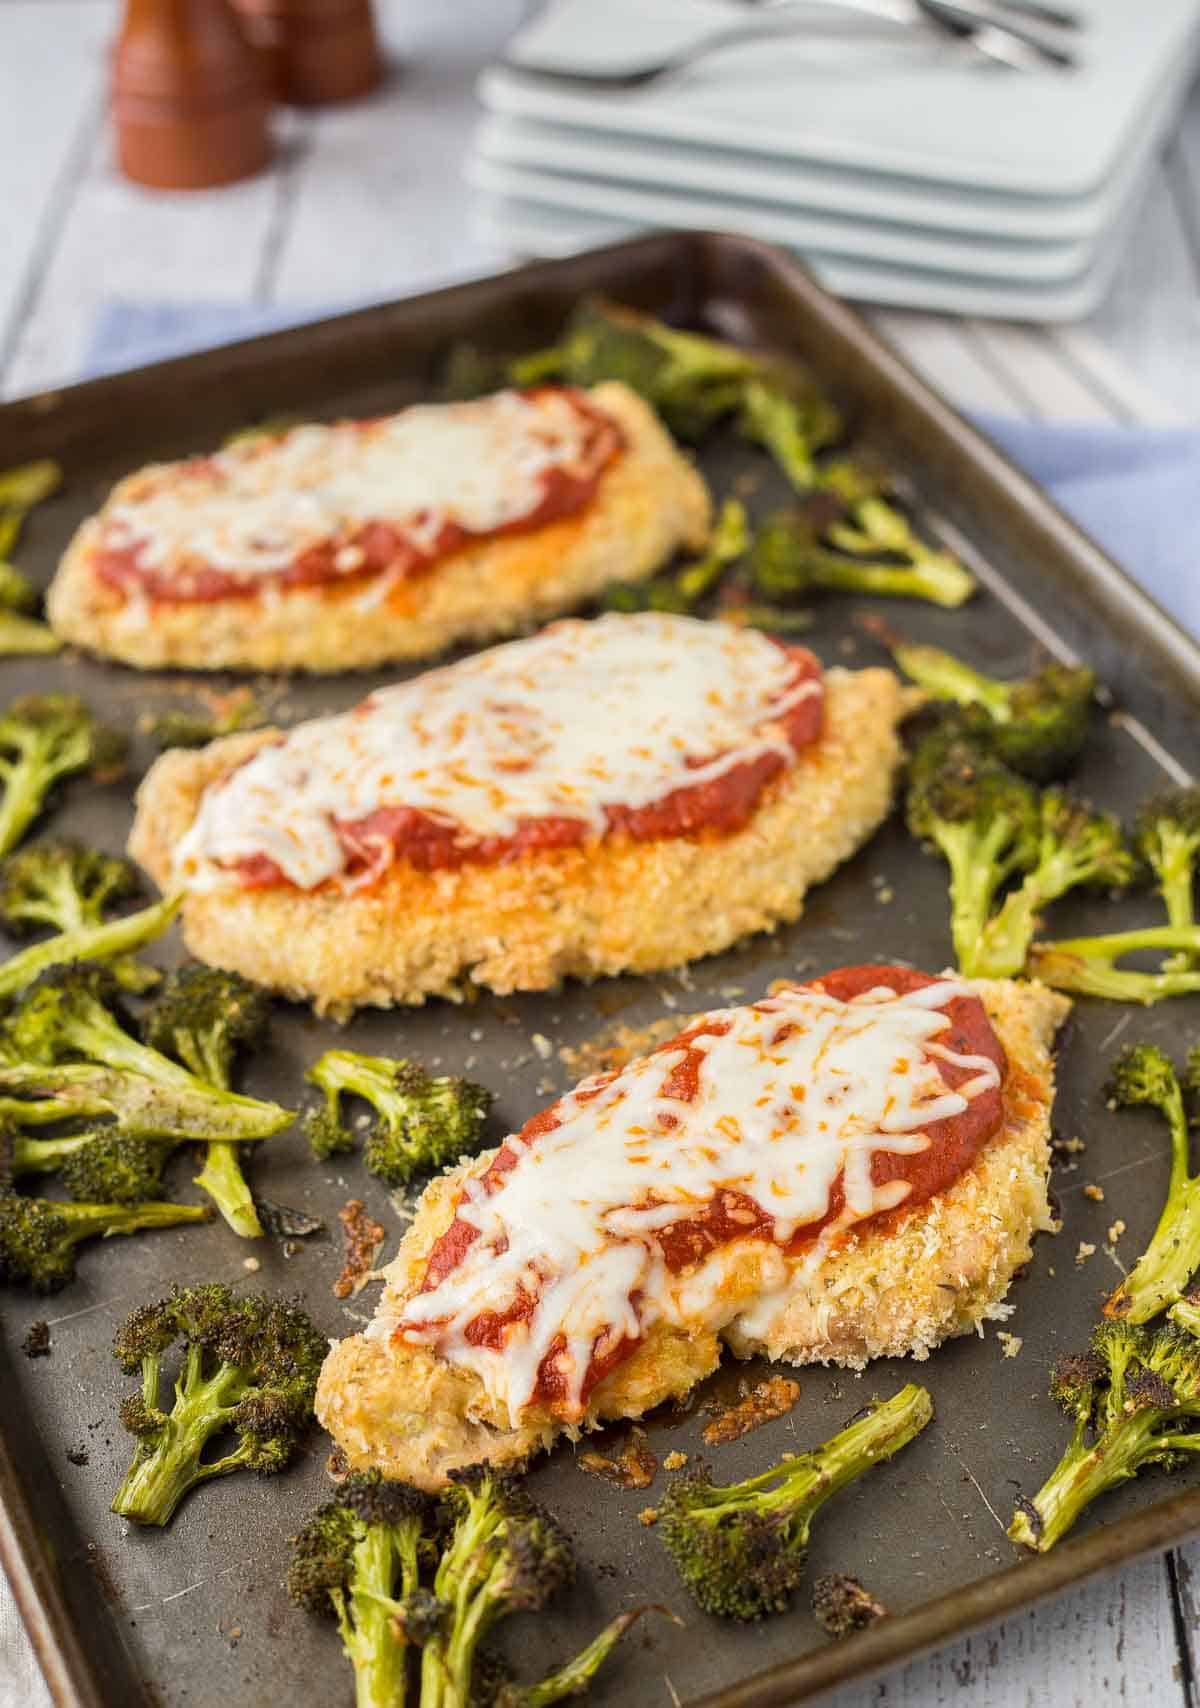 Three chicken breasts on sheet pan with broccoli.